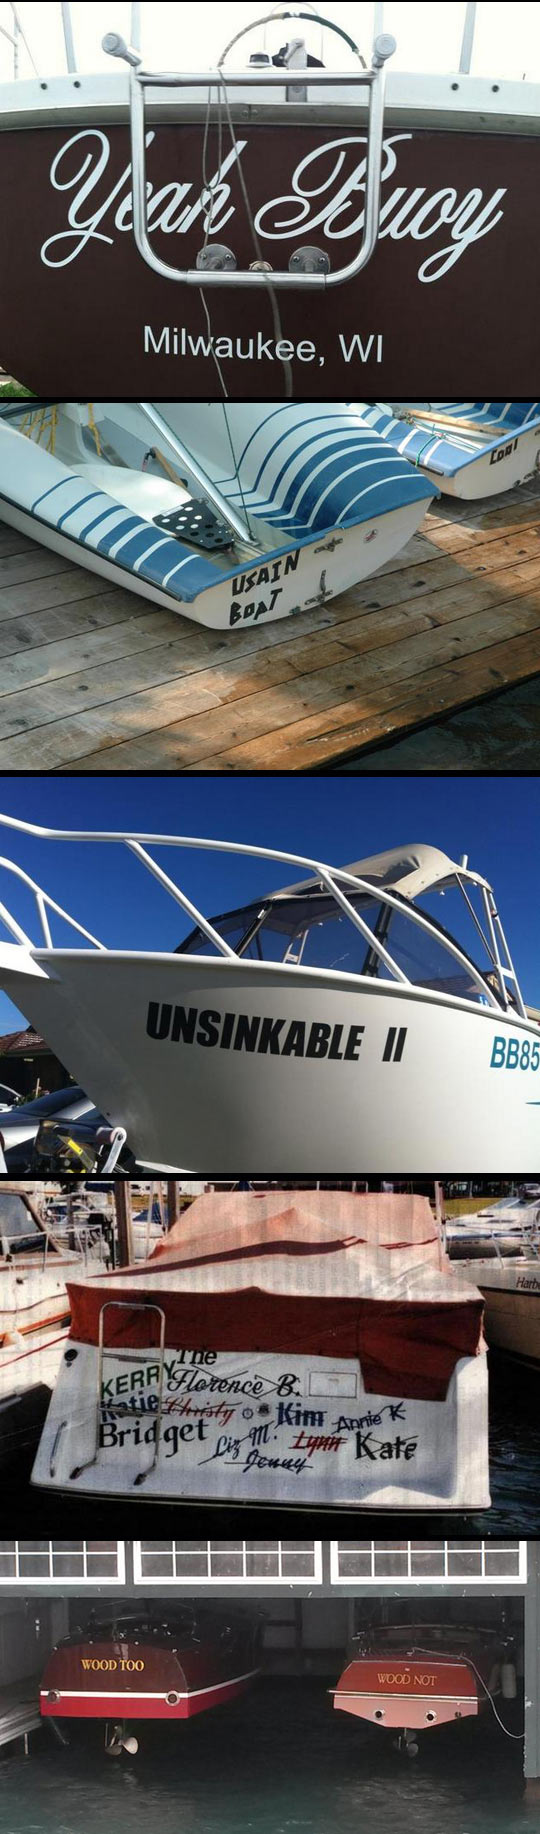 funny-boat-names-water